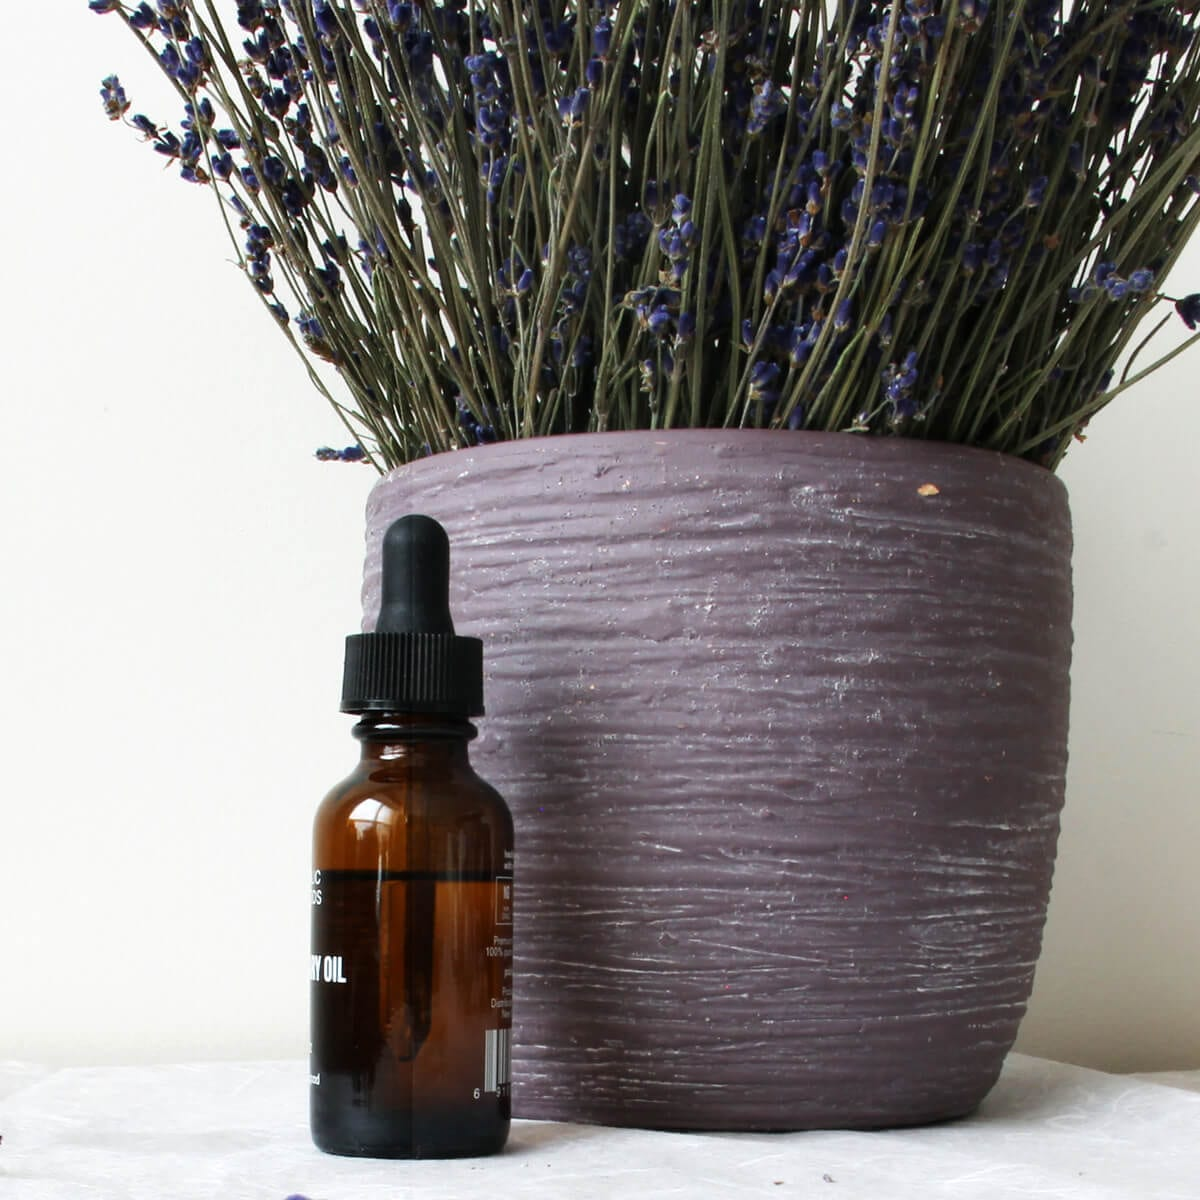 public goods essential oil bottle, pot of lavender